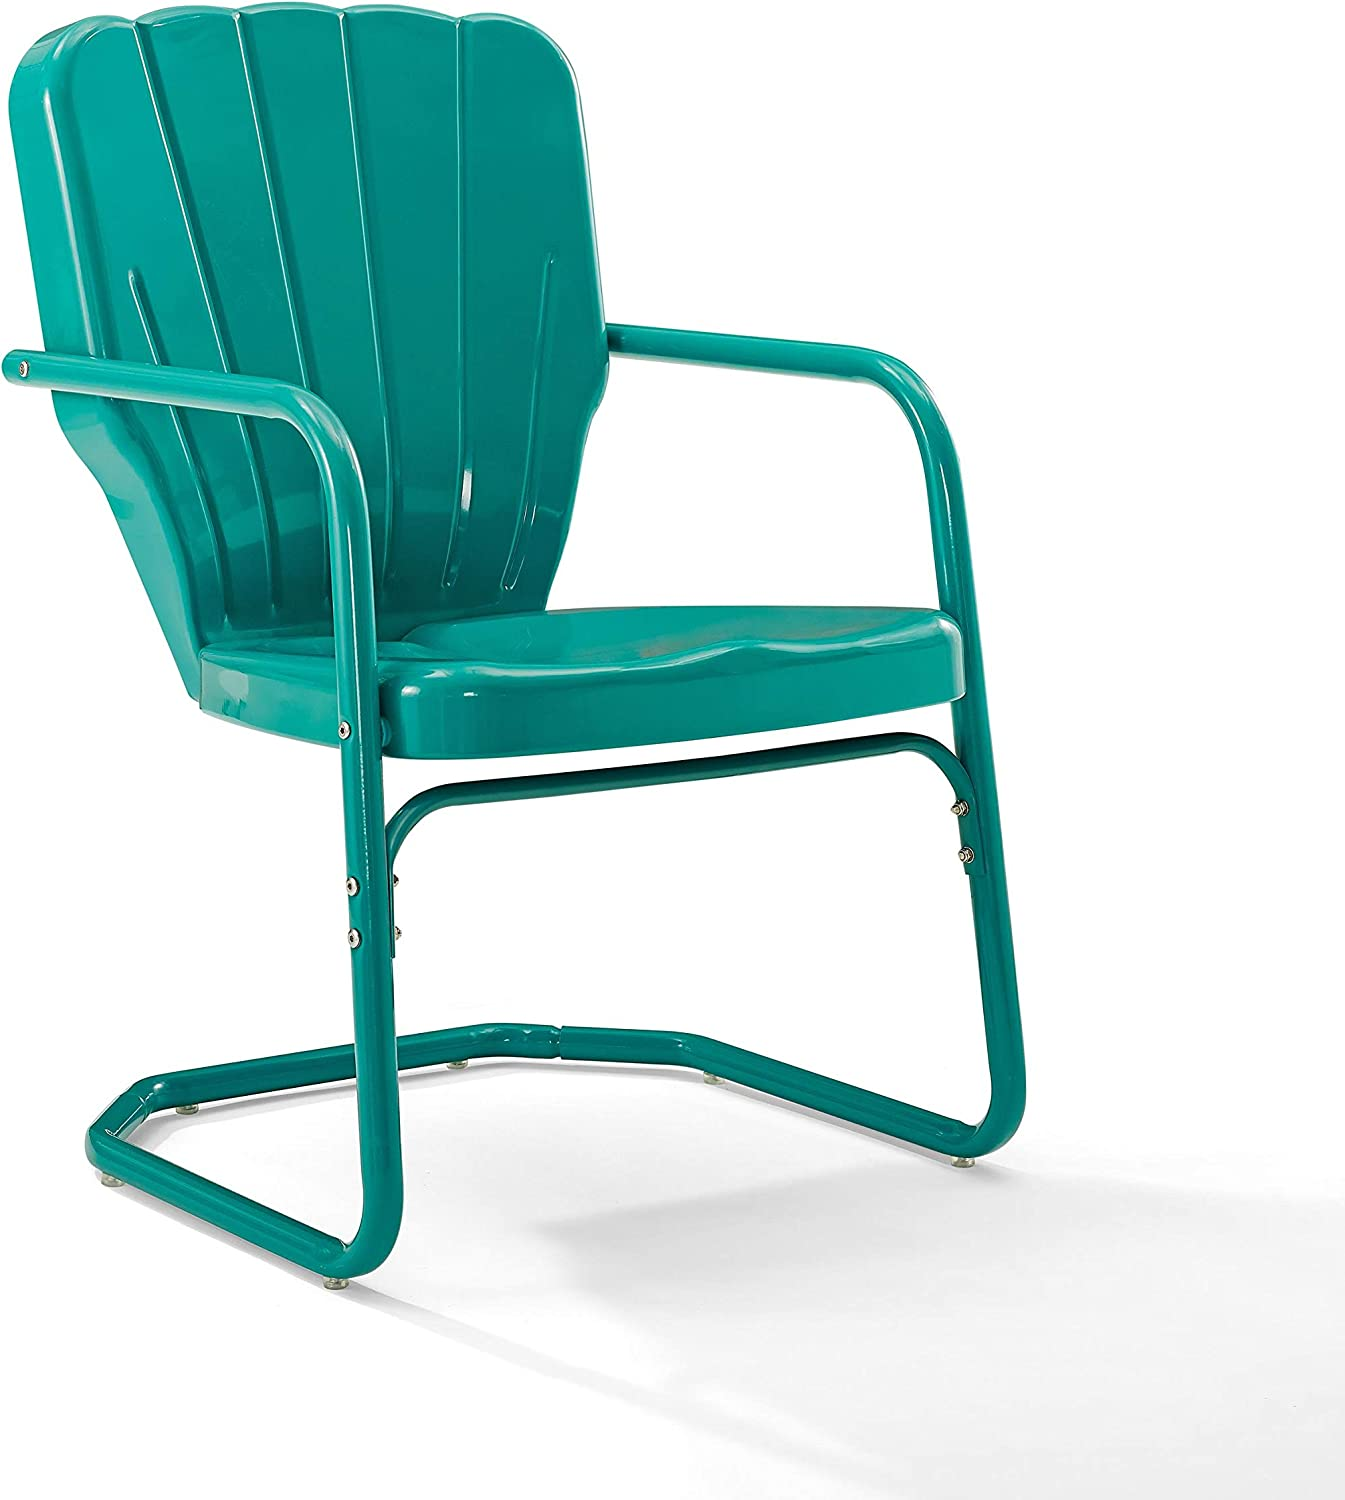 Crosley Furniture CO1031-TU Ridgeland Retro Metal Chair, Turquoise